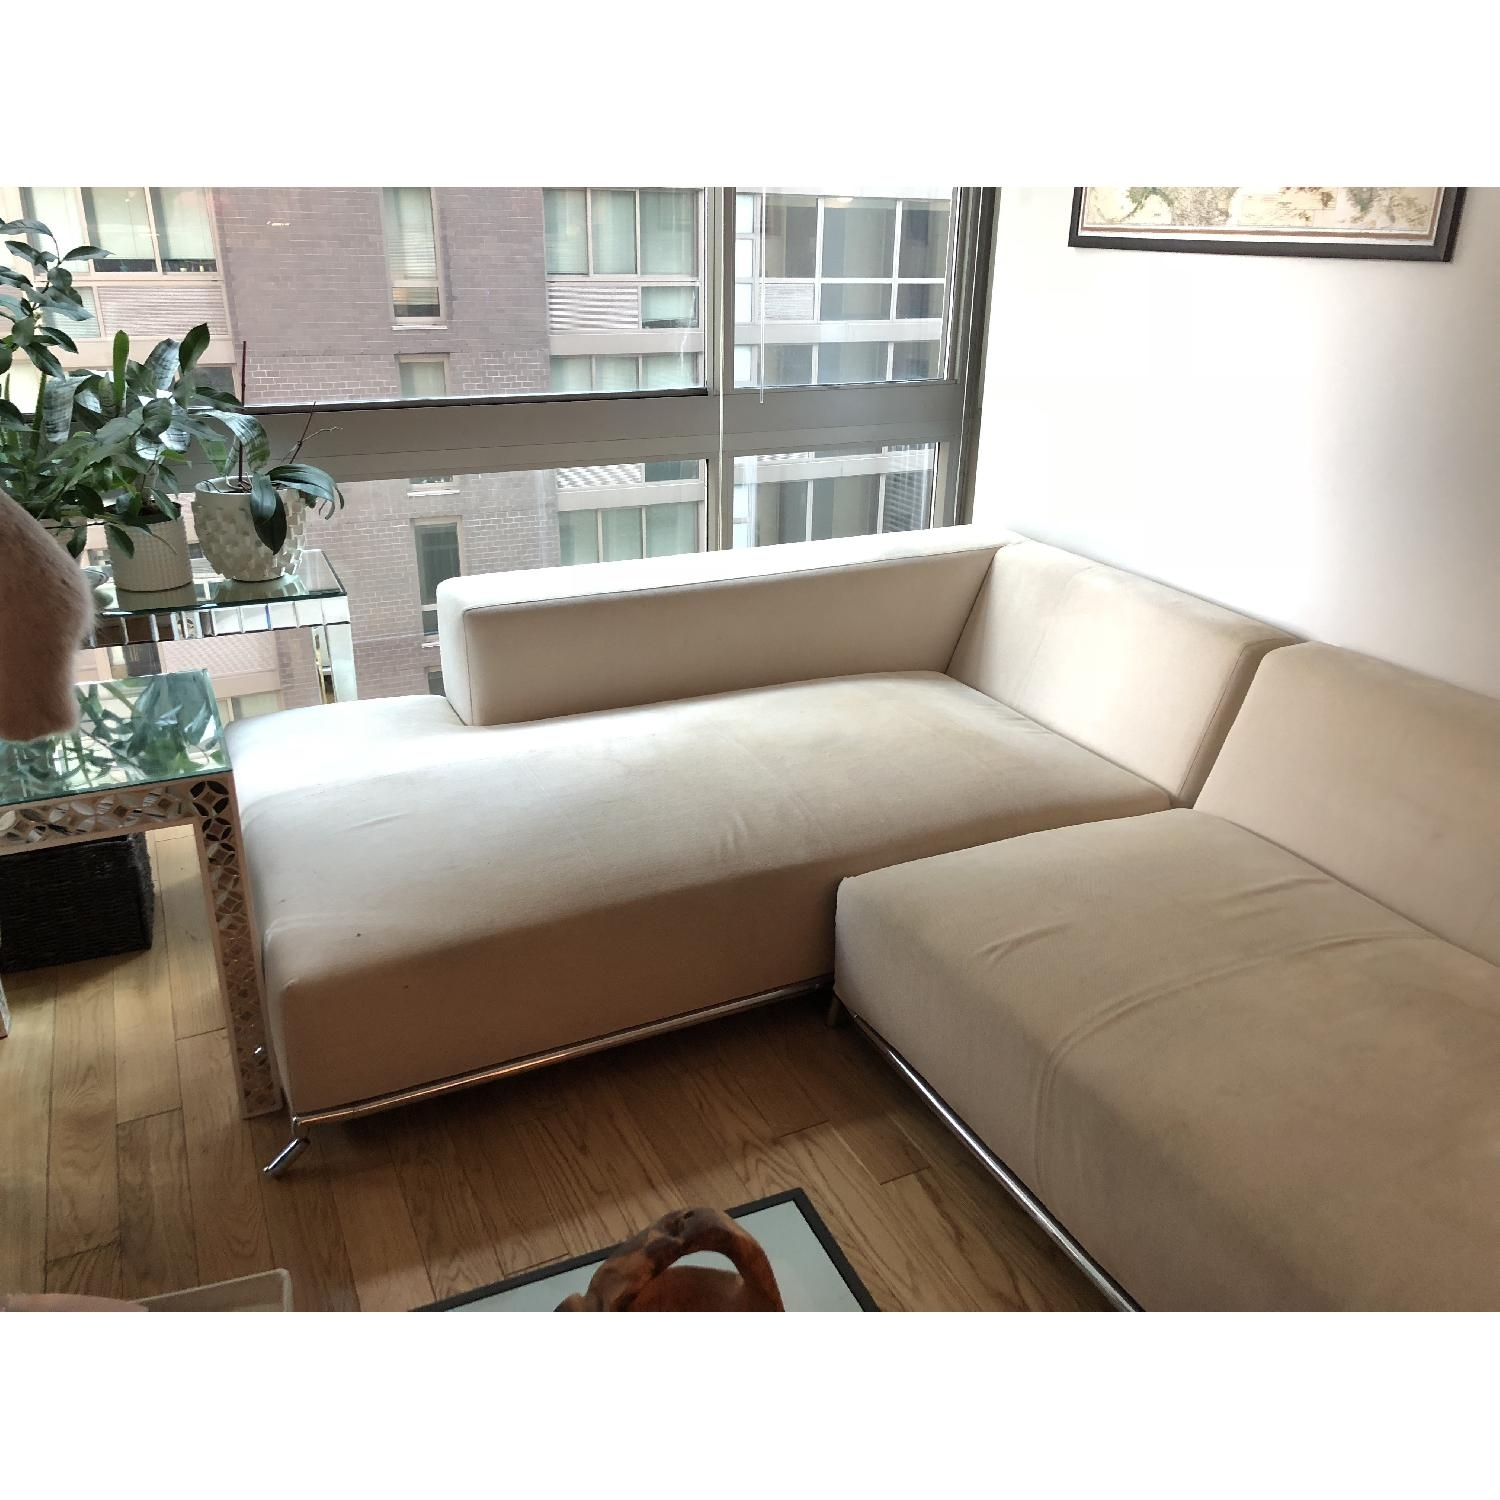 2 Piece Chaise Sectional Sofa | Baci Living Room Throughout Tenny Cognac 2 Piece Left Facing Chaise Sectionals With 2 Headrest (Image 3 of 25)